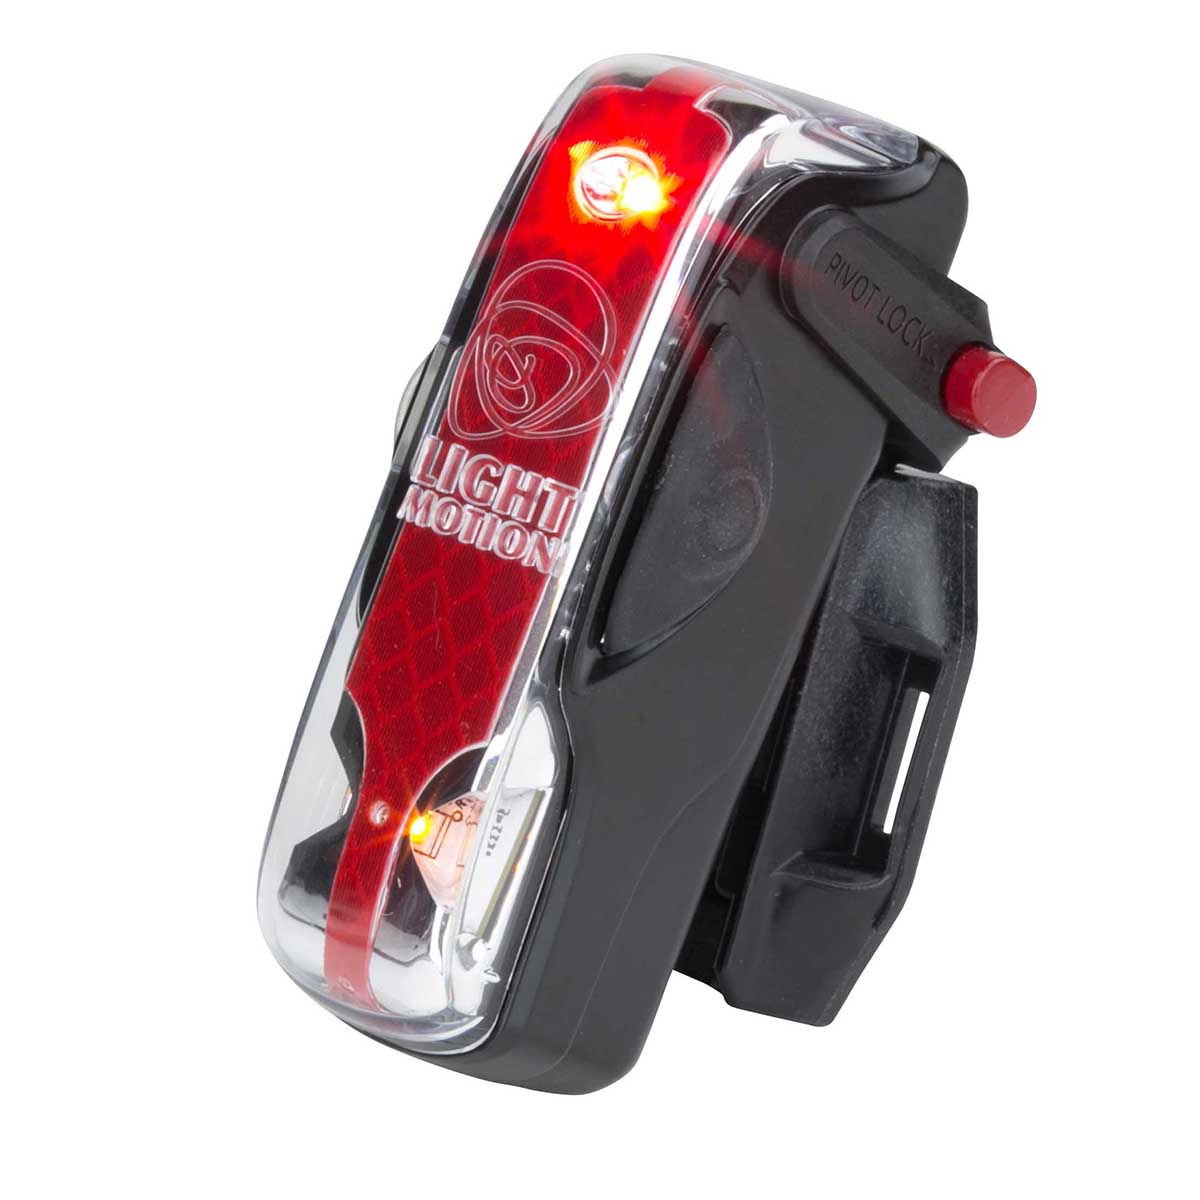 Eclairage Light & Motion Vis 180 Pro - One Size Noir